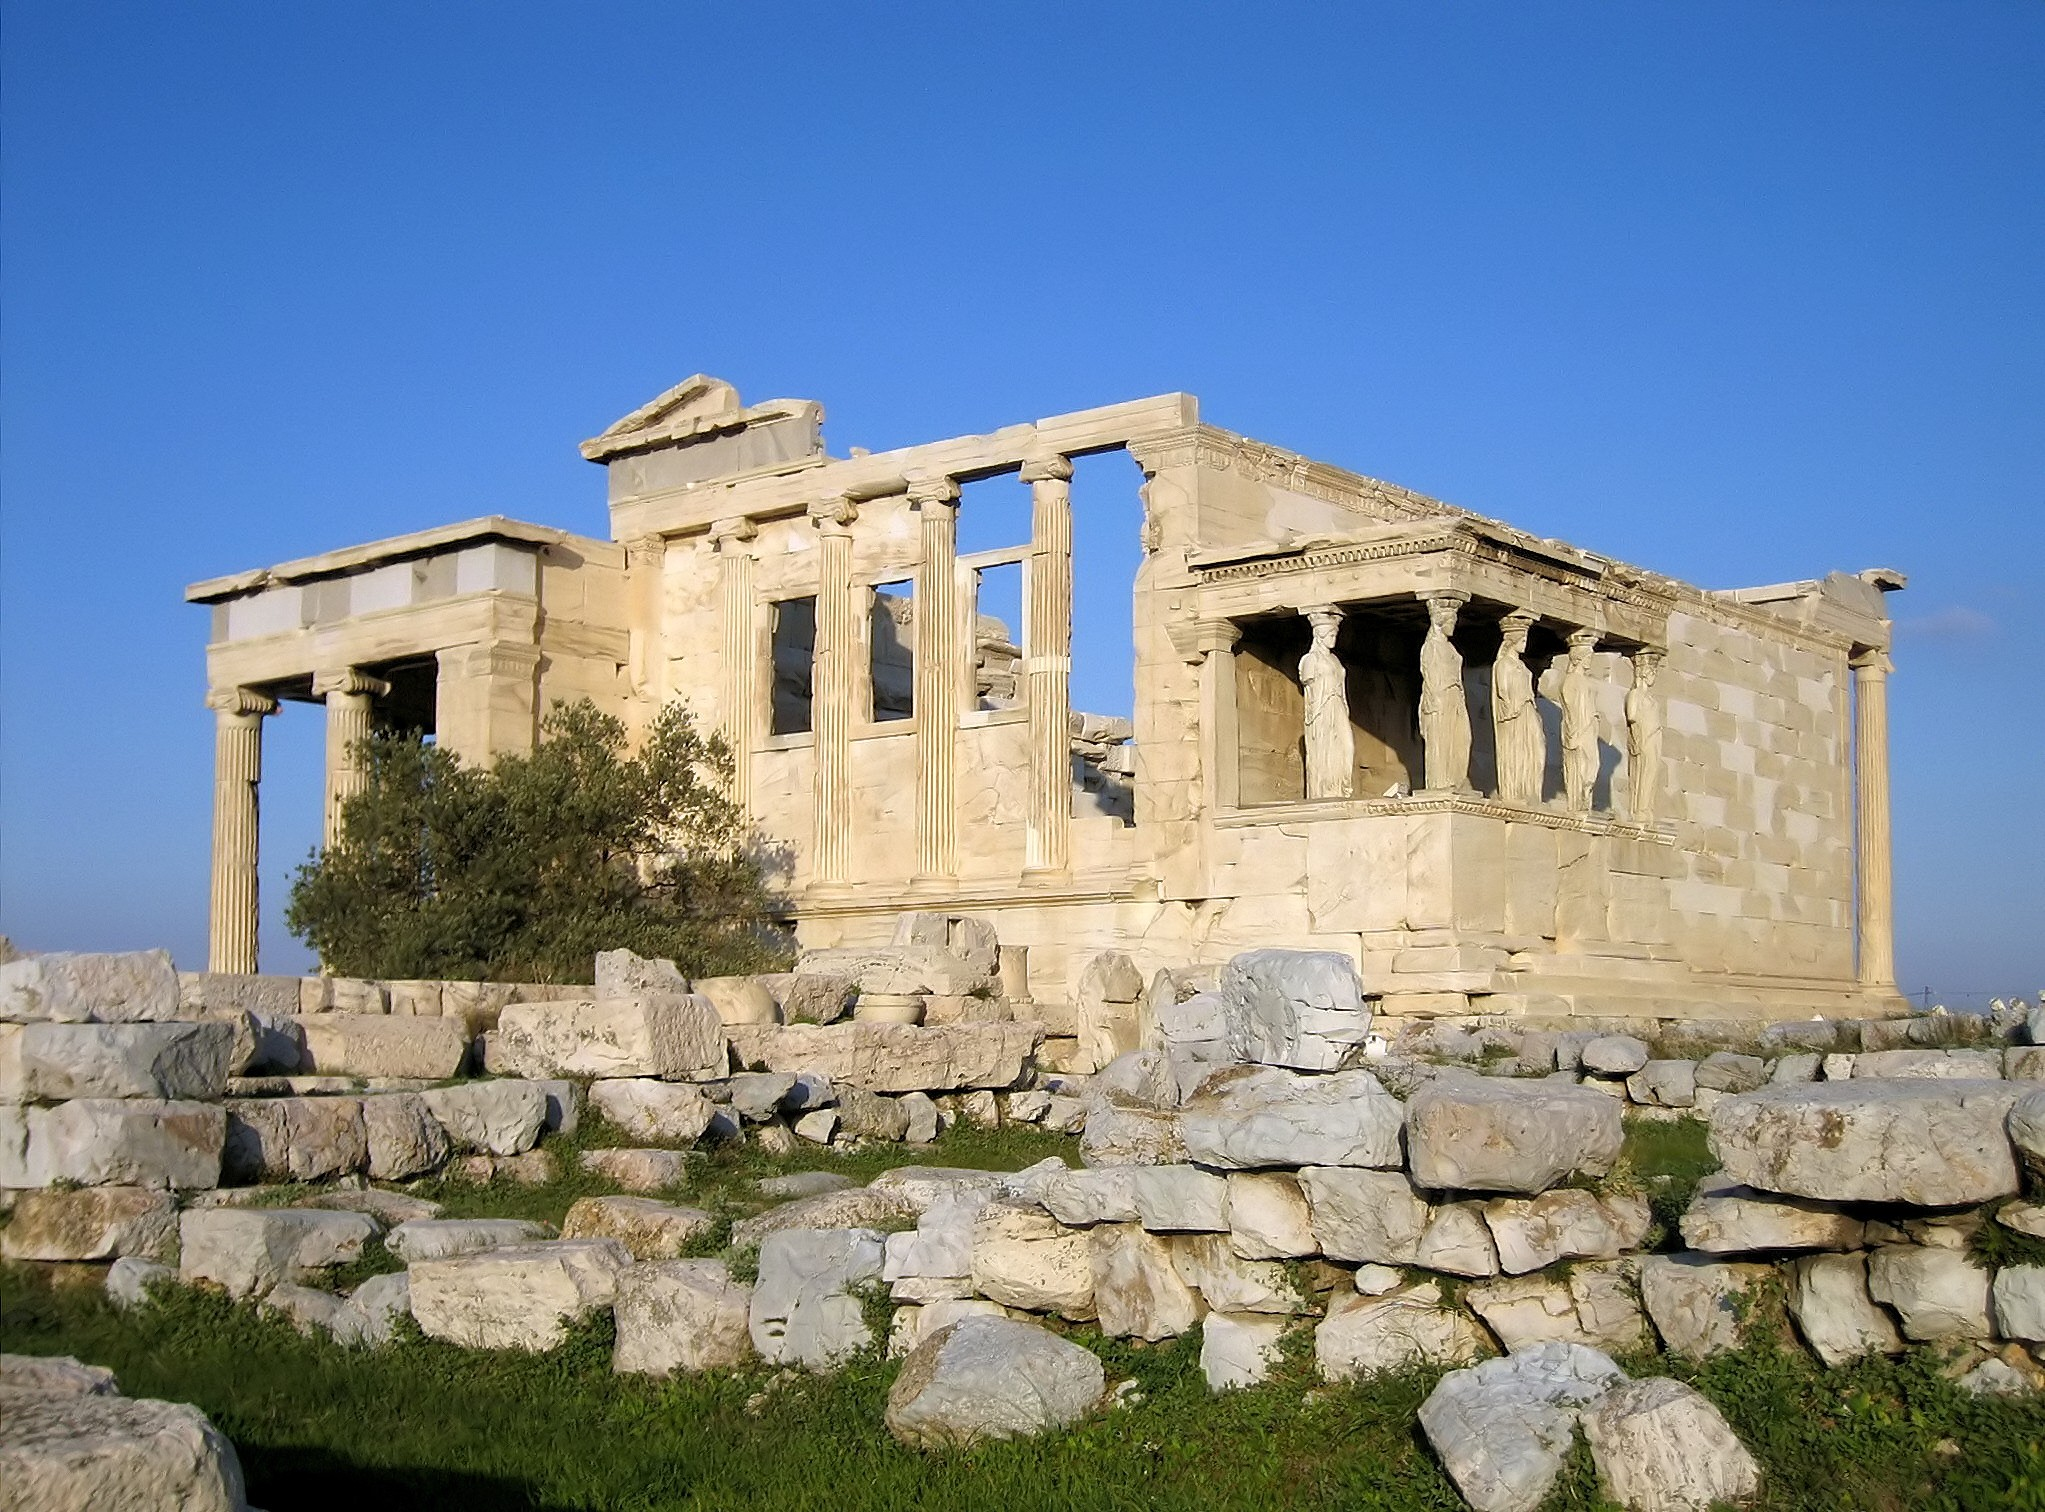 Erchtheum from western north